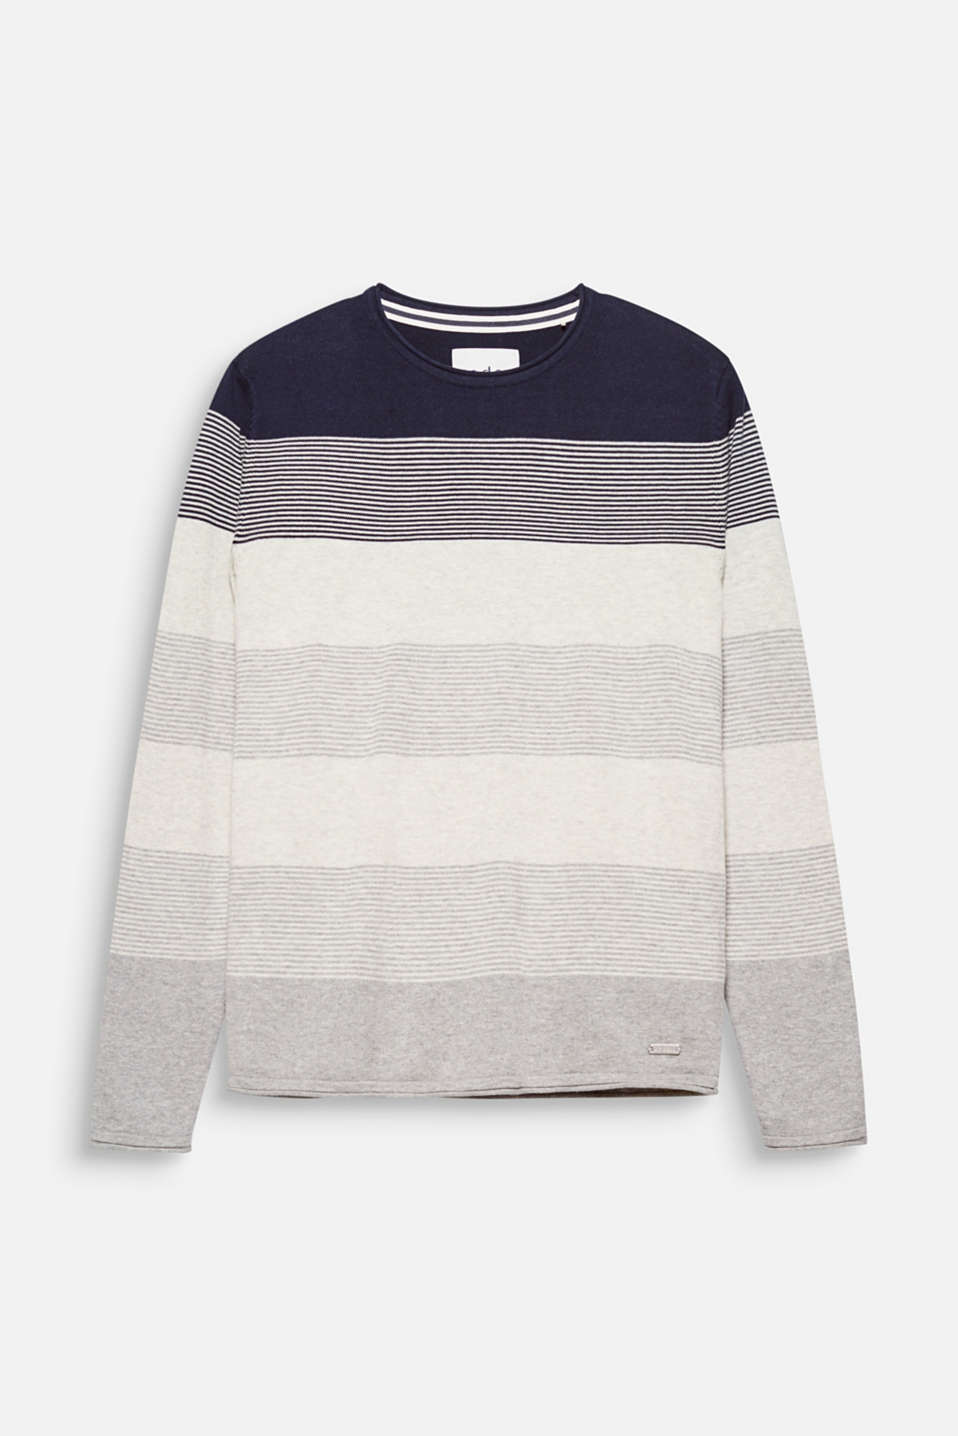 Sporty block stripes and soft fine knit yarn make this jumper a timeless style favourite.